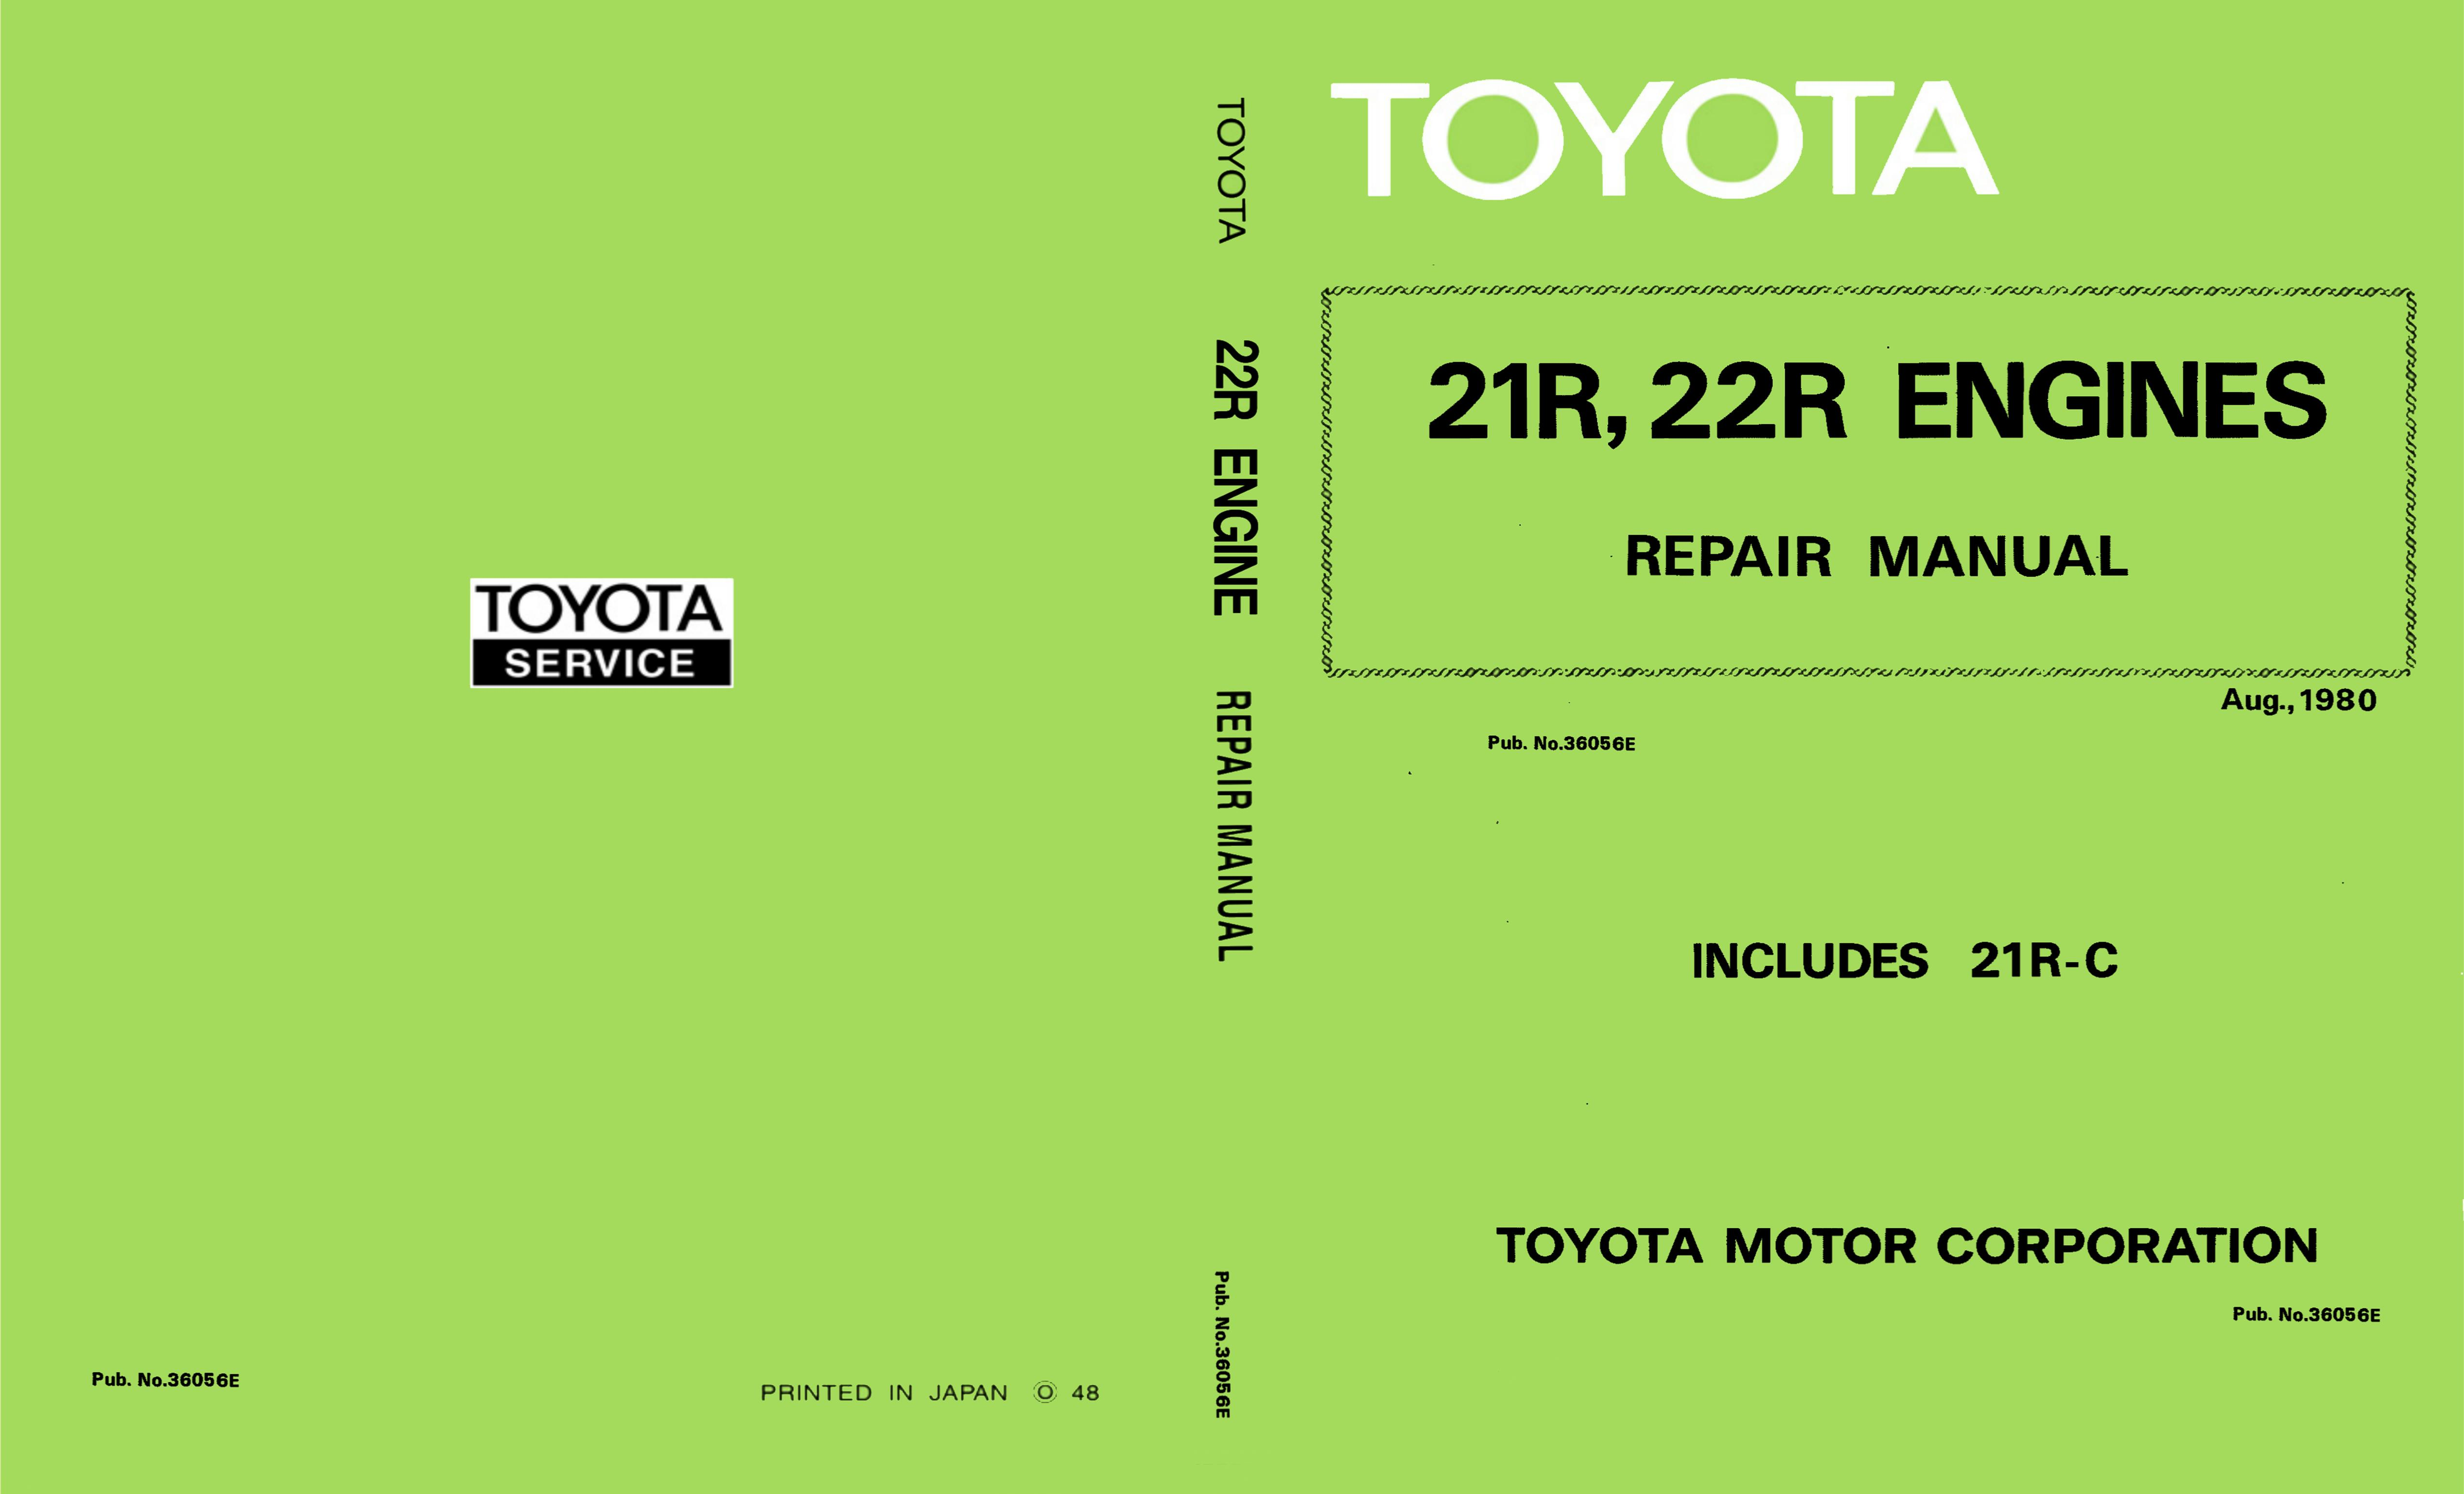 toyota 22re engine rebuild diagrams with Toyota 22r Engine Parts Diagram on 4965 Old Celica Transmissions Diagrams  T40 T50 W40 W50   P51 together with 86 Toyota Pickup Vacuum Diagram also 3vze Vacuum Hose Diagram Reference 113572 further 1981 Toyota 22r Carburetor Diagram furthermore .